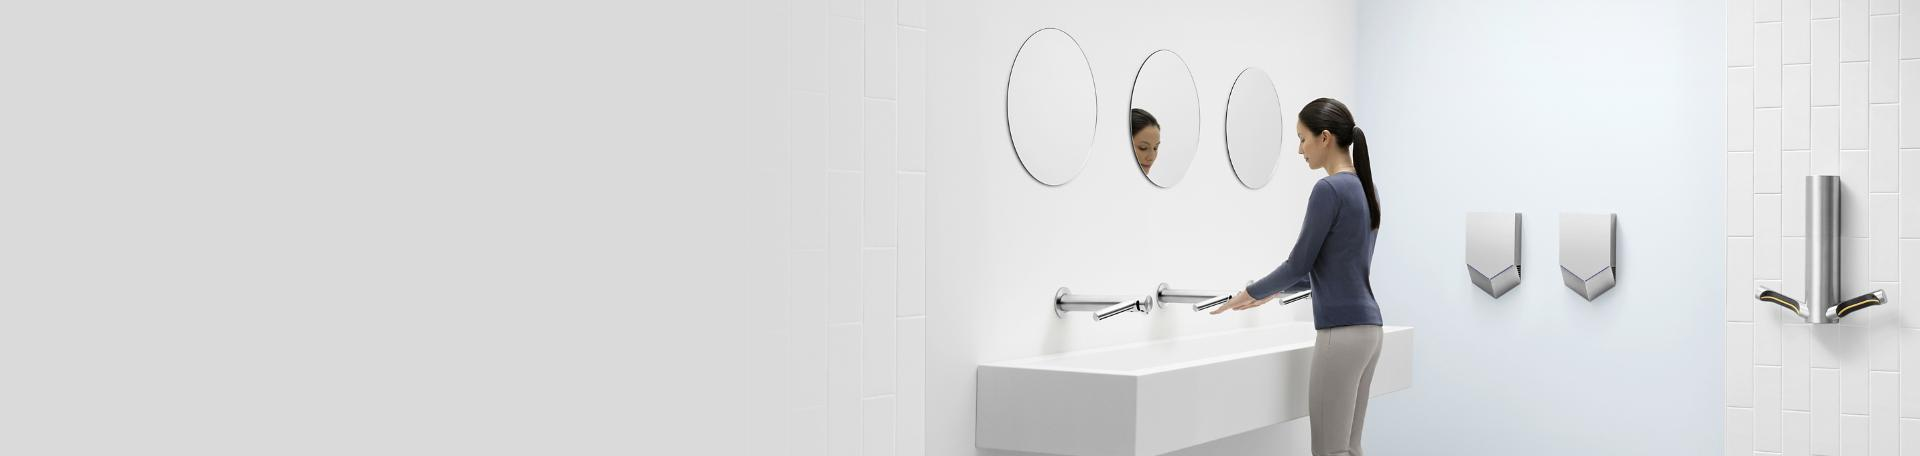 Woman using Airblade technology in bathroom setting